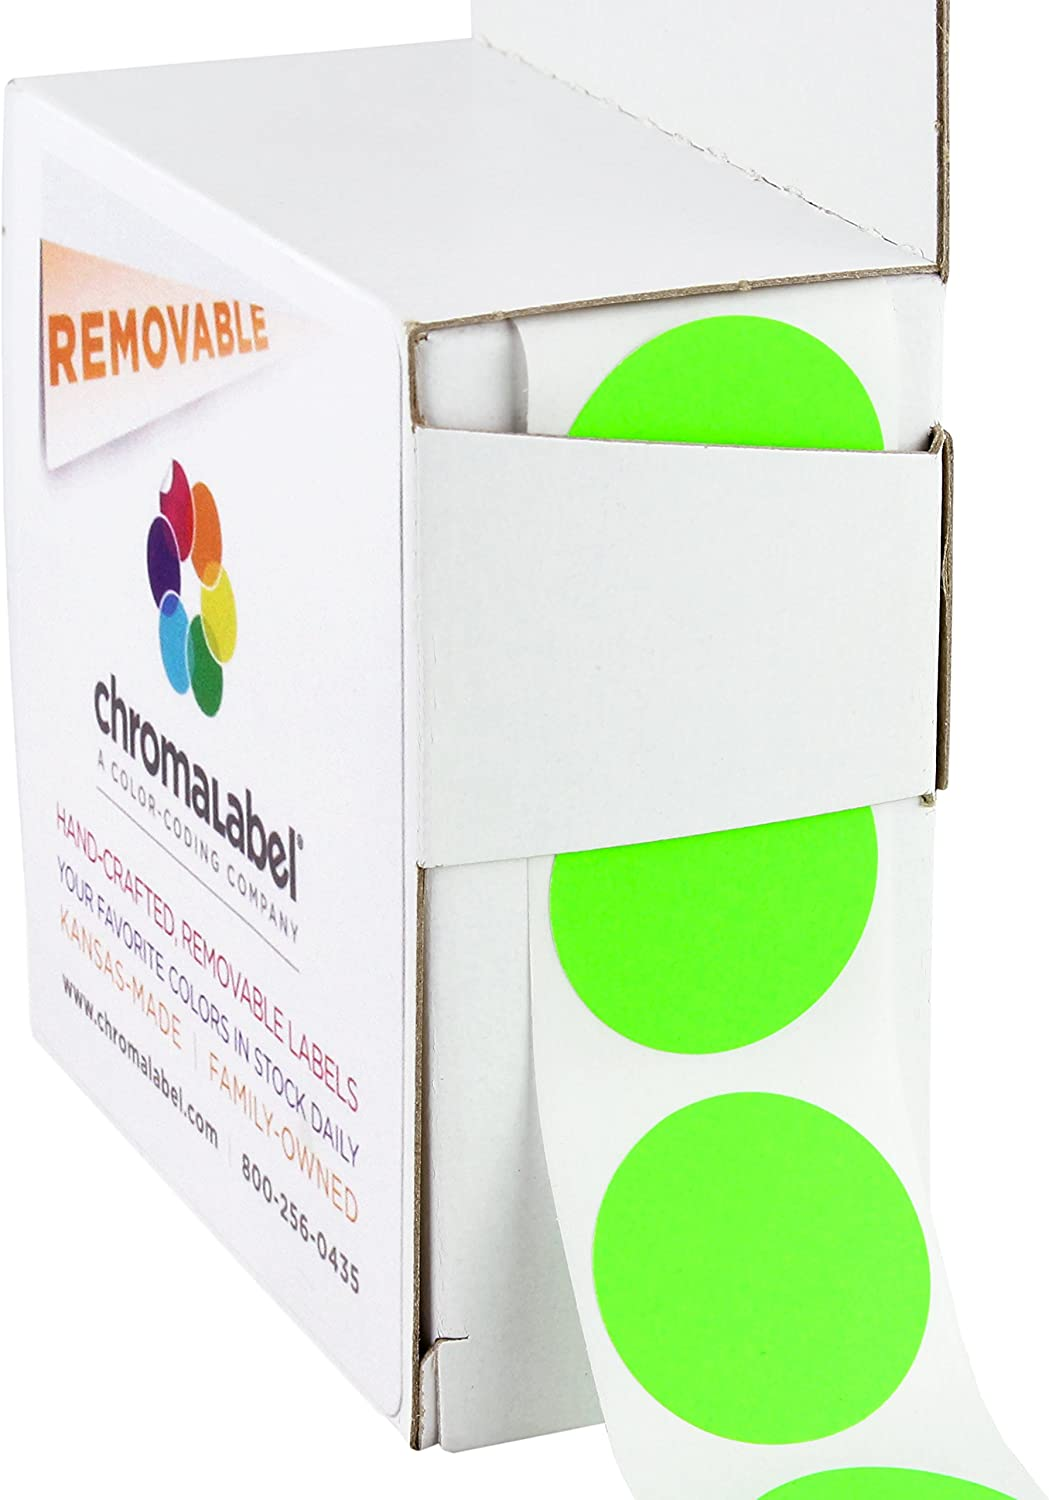 ChromaLabel 1 Inch Round Removable Color-Code Dot Stickers, 1000 per Dispenser Box, Fluorescent Green